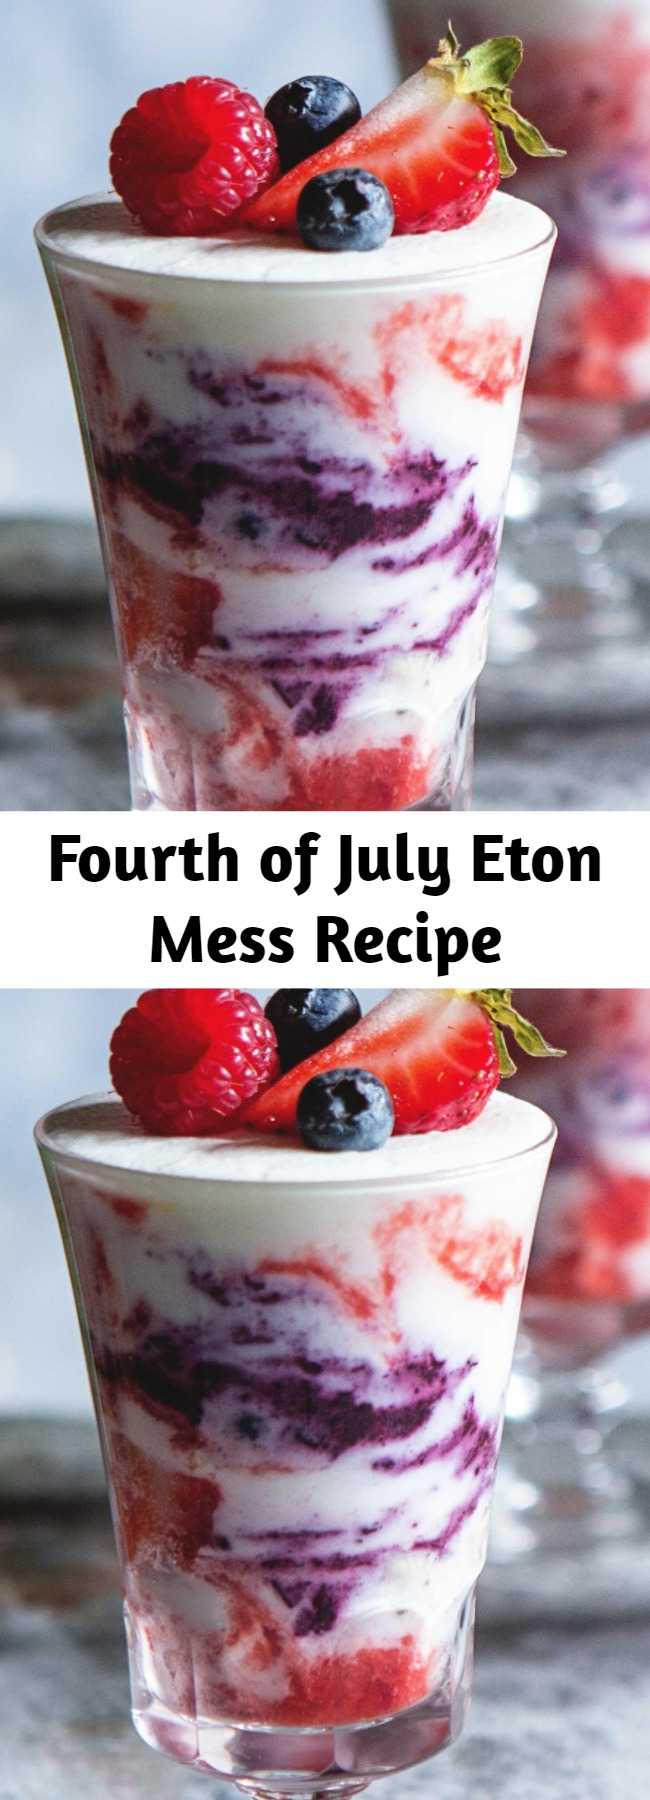 Fourth of July Eton Mess Recipe - There's no better way to celebrate American Independence than with a throwback British dessert. After fireworks, we dessert.